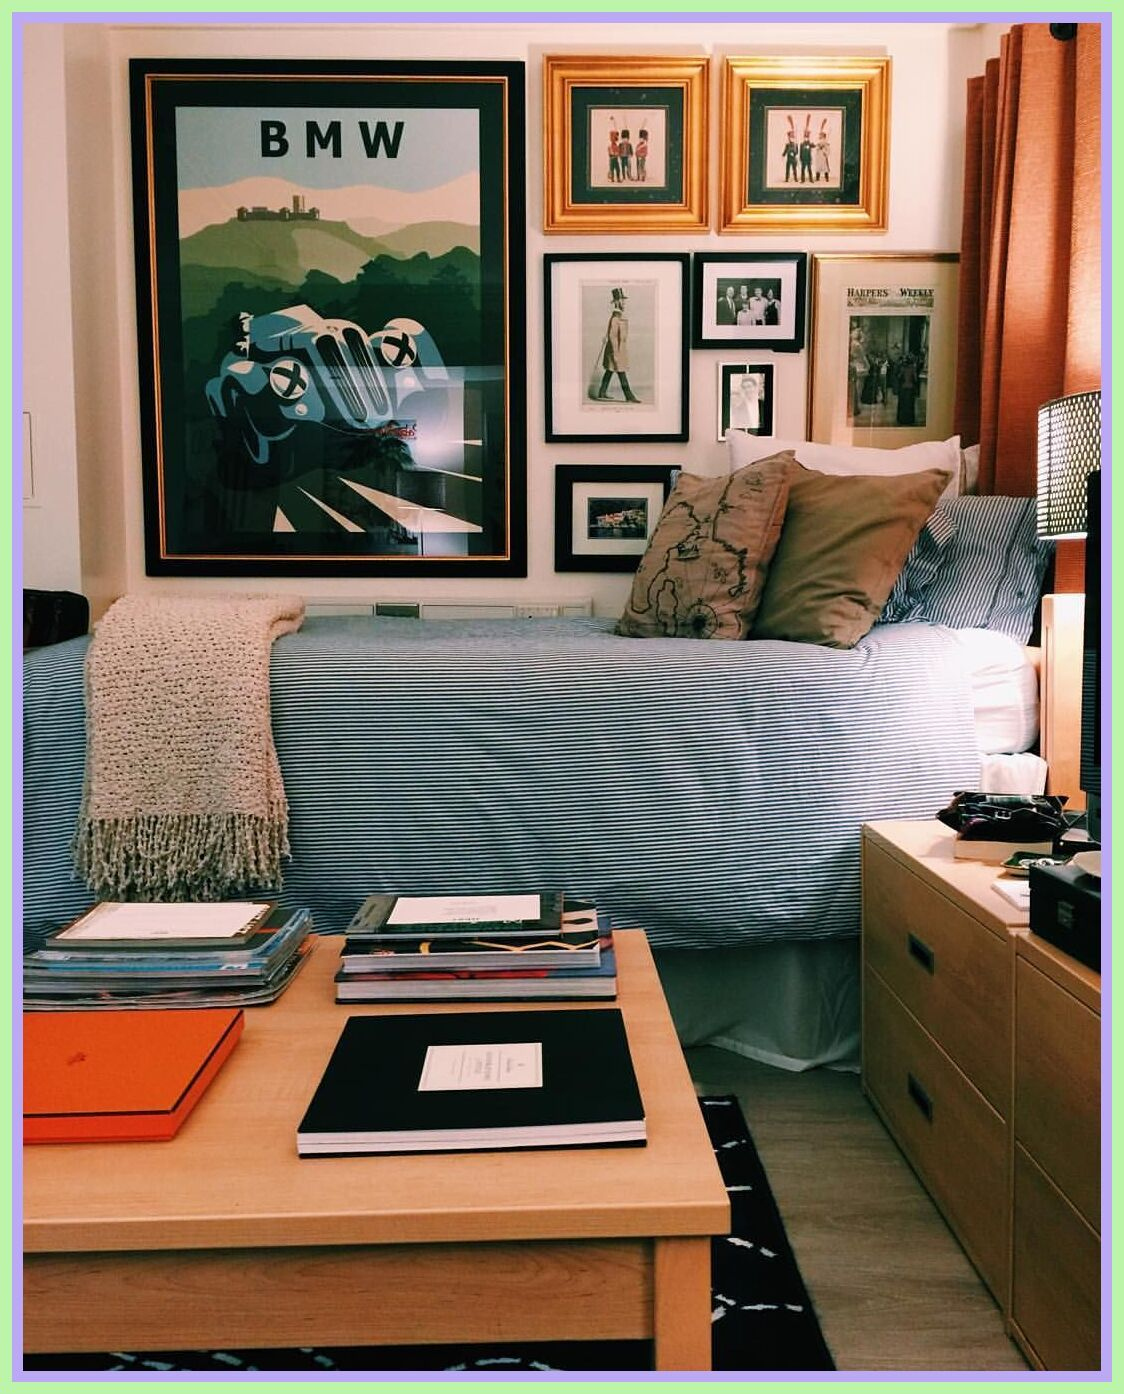 Dorm Room Ideas for guys Boys-#Dorm #Room #Ideas #for #guys #Boys Please Click Link To Find More Reference,,, ENJOY!!